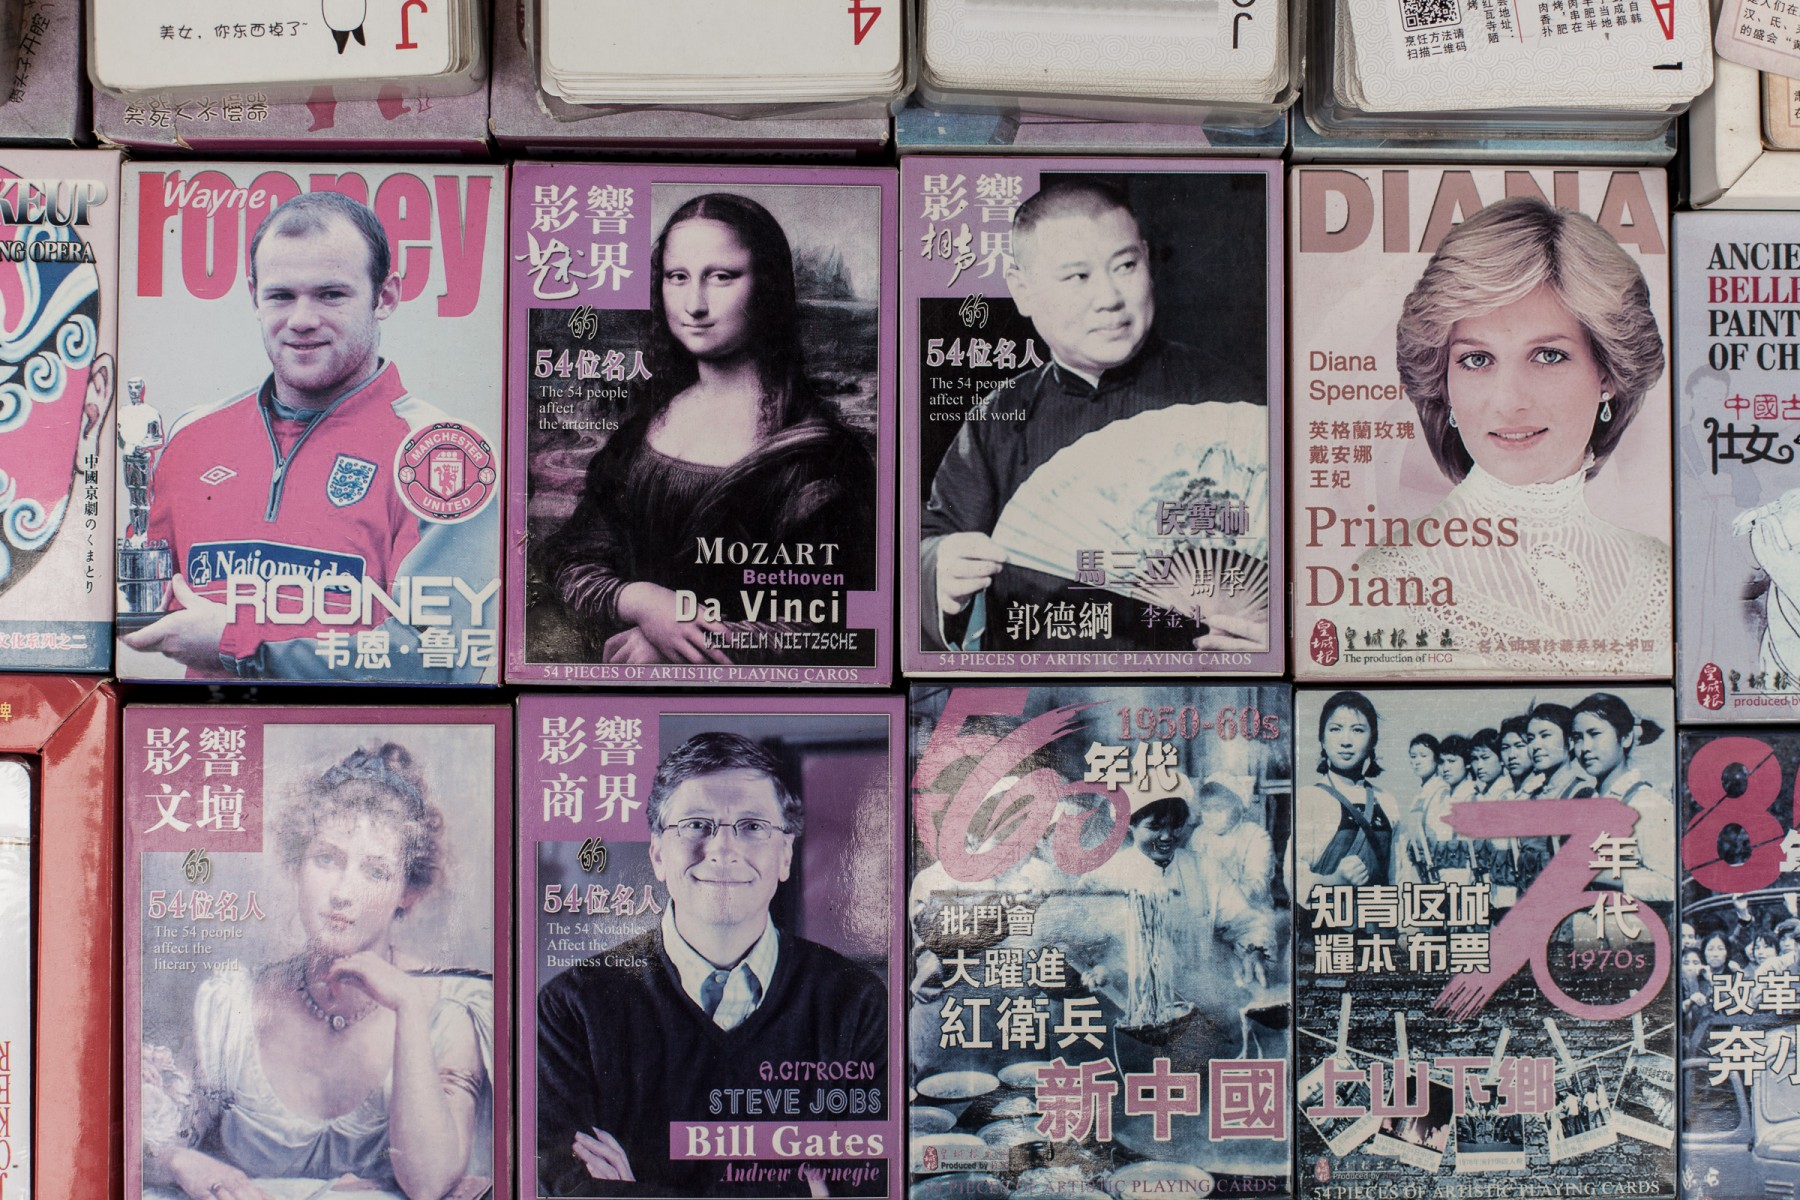 Souvenir playing cards on sale in Chengdu, China.